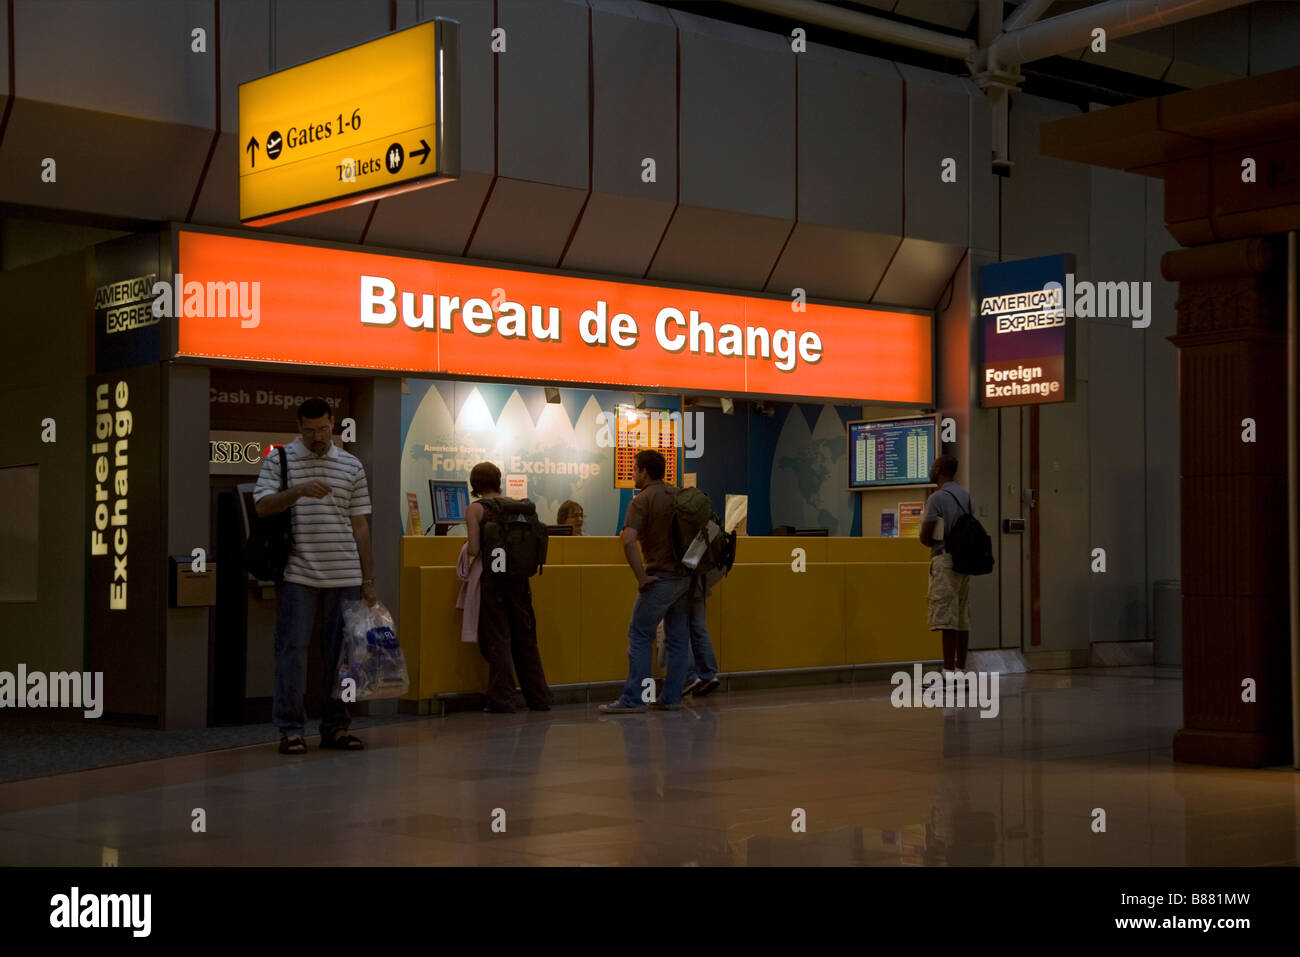 Bureau De Change Office Operated By American Express At Heathrow Airport Terminal  London